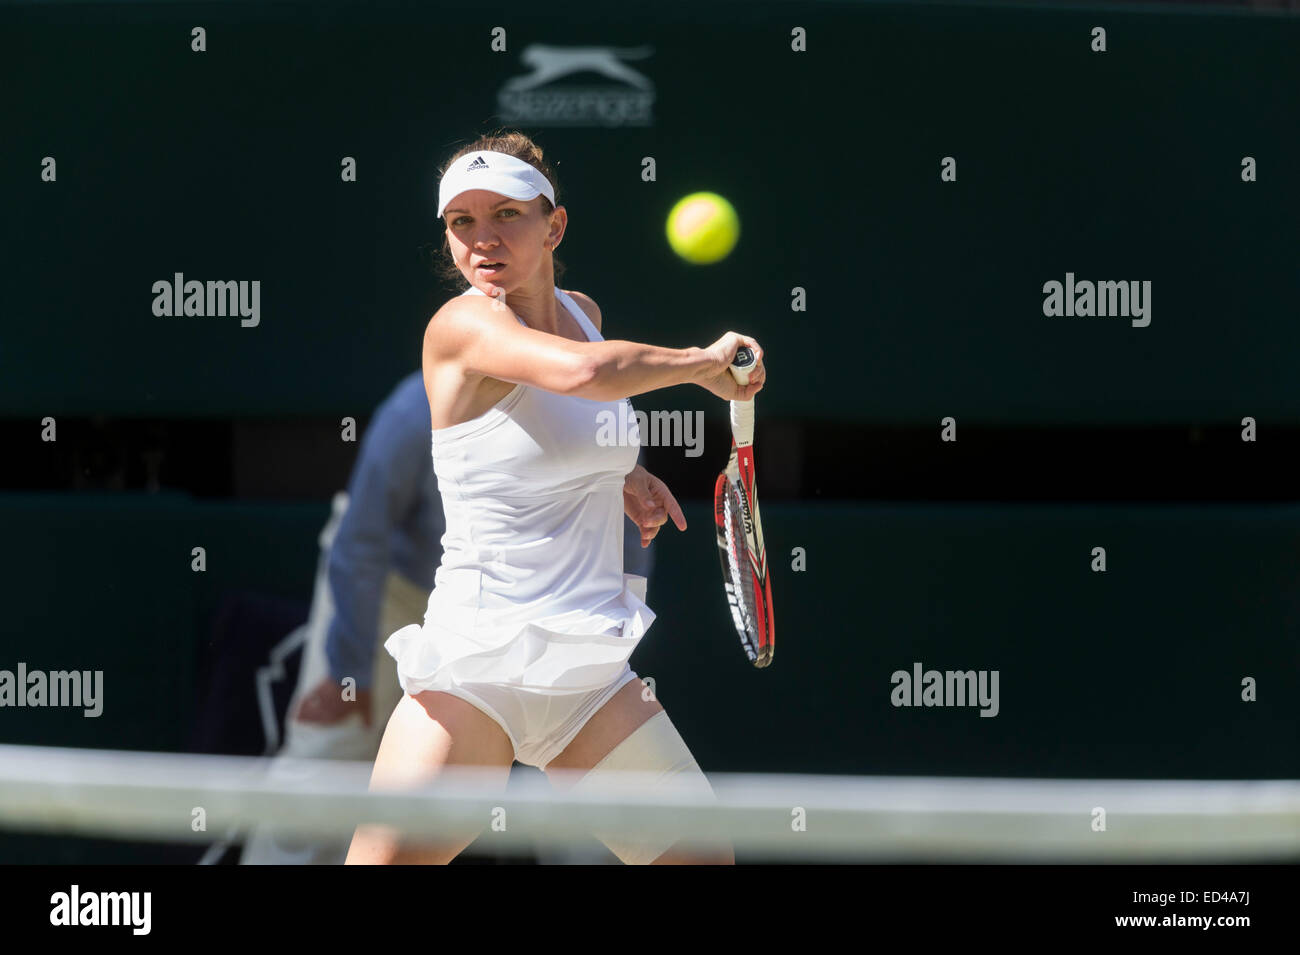 03.07.2014. The Wimbledon Tennis Championships 2014 held at The All England Lawn Tennis and Croquet Club, London, - Stock Image